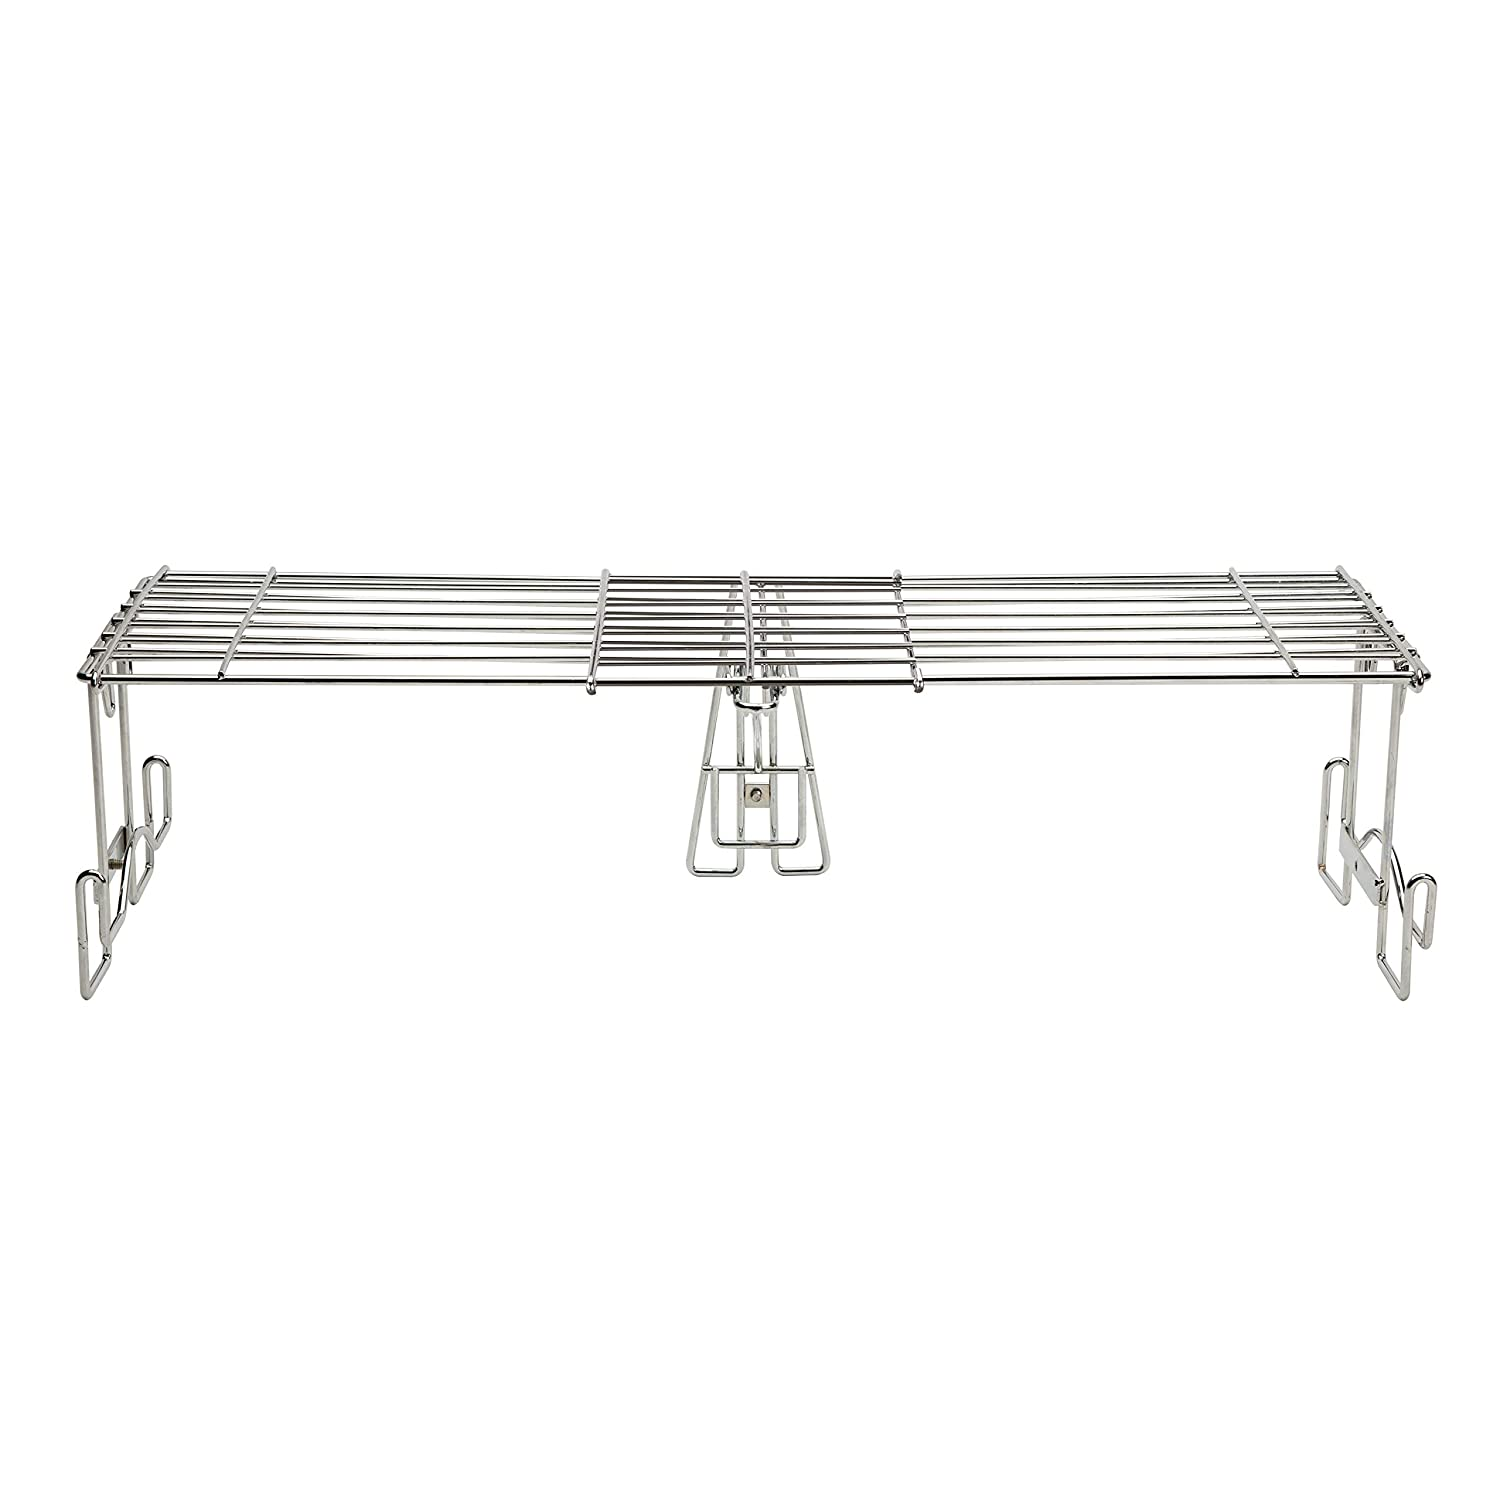 Cuisinart CAWR-036 Adjustable Griddle Warming Rack, Stainless Steel